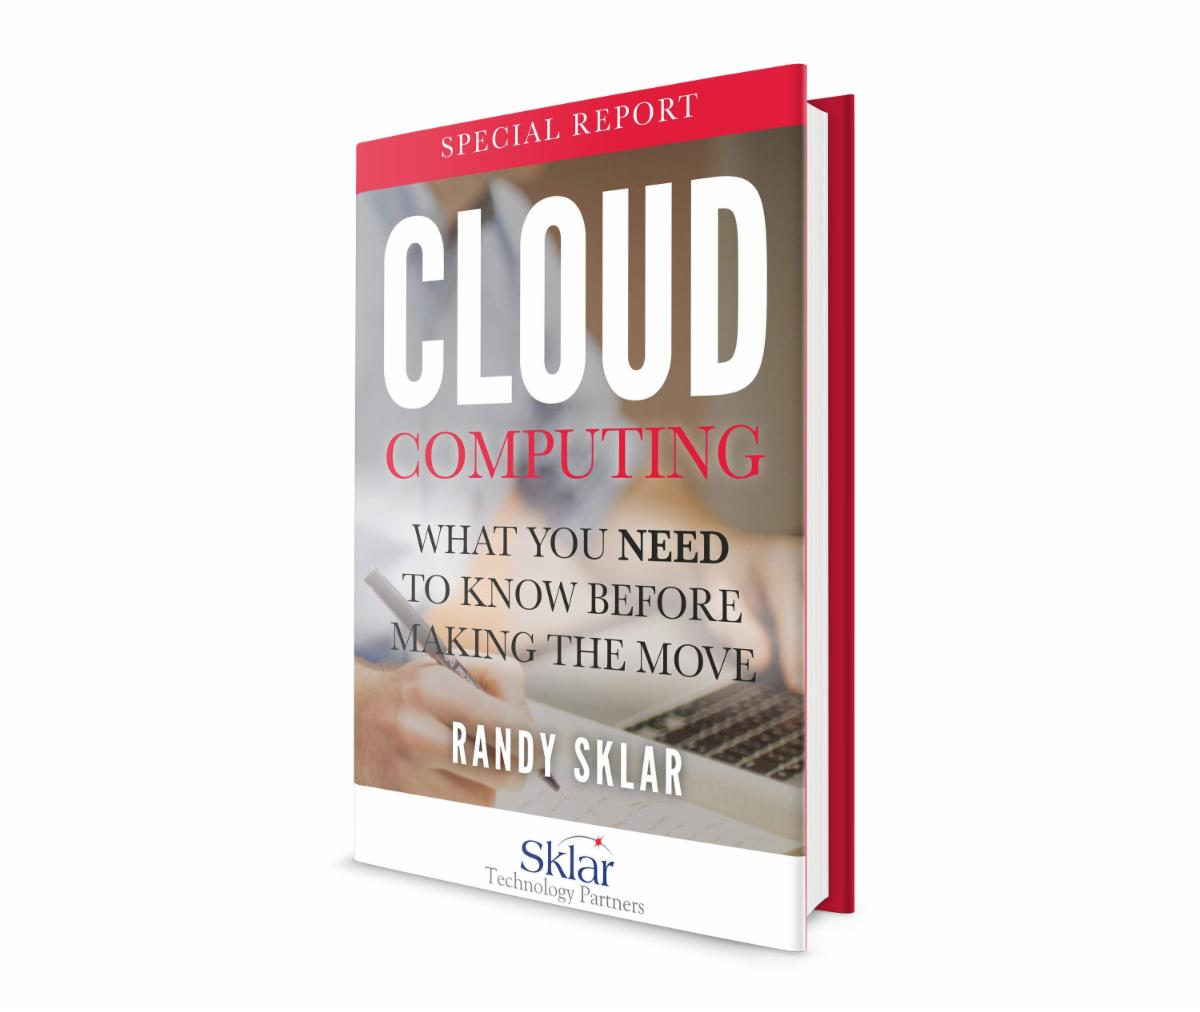 Cloud-ebook-cover.jpg